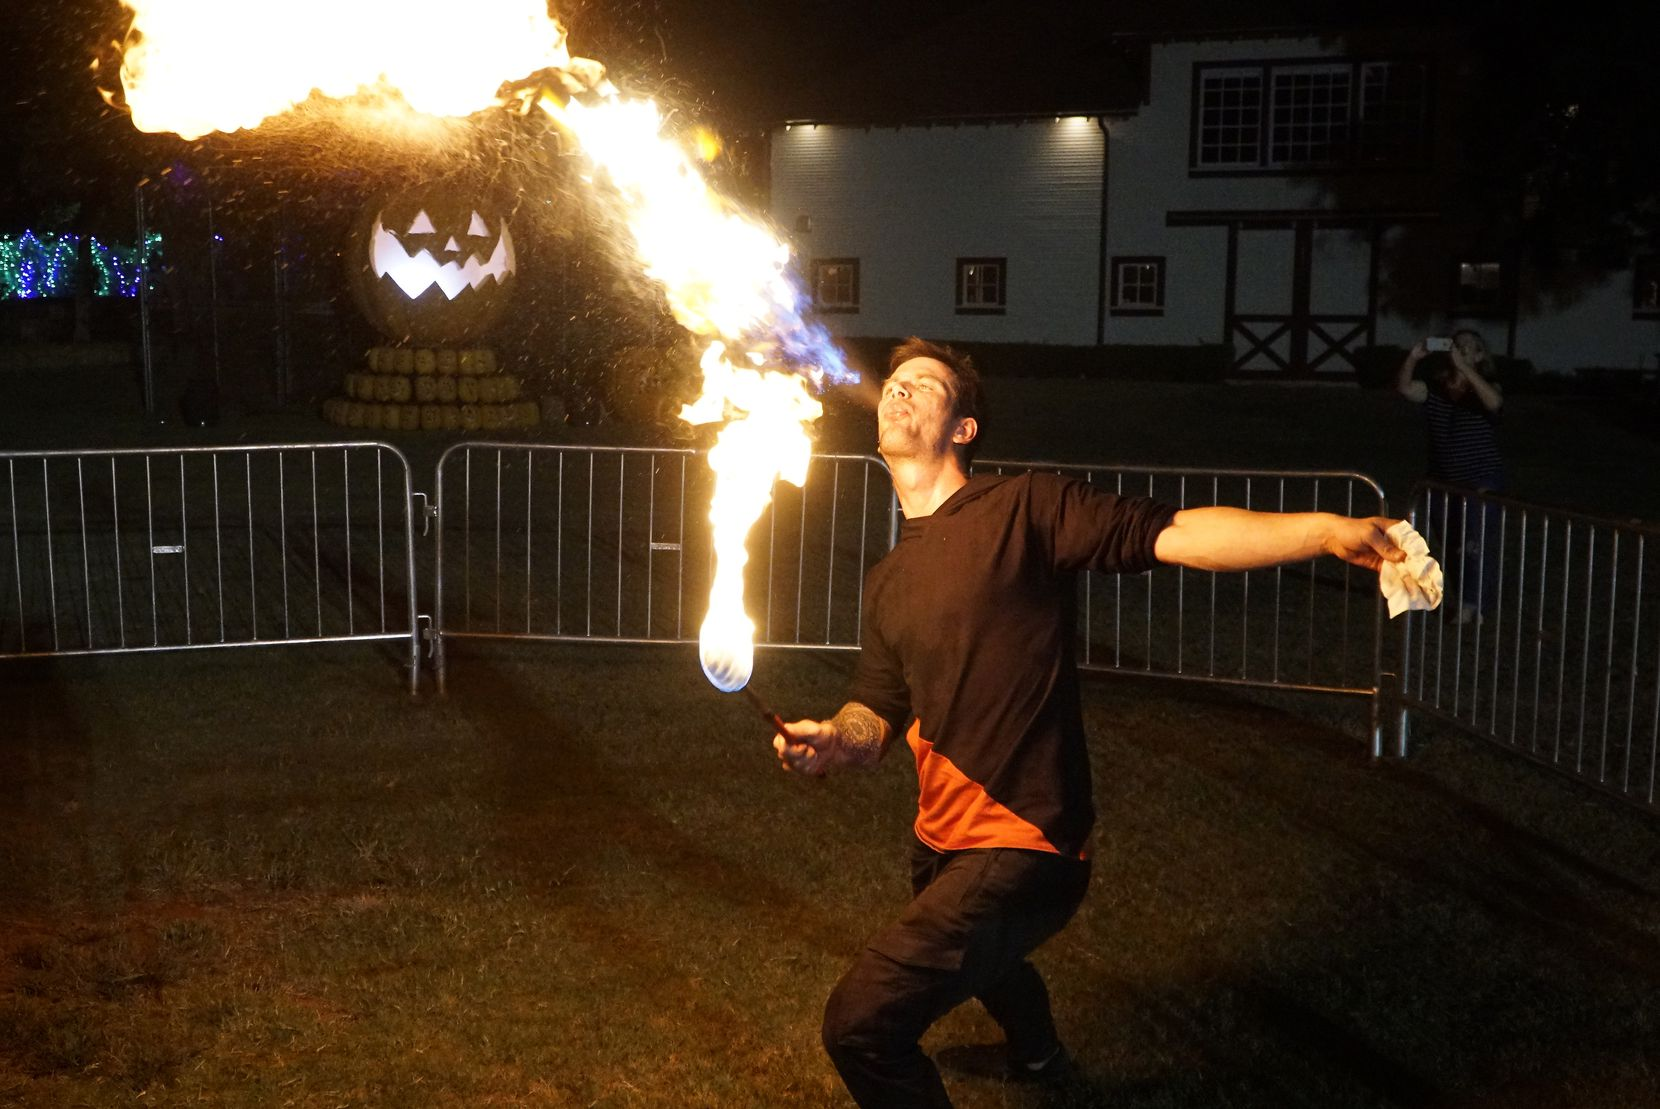 Fire Performer Collin Deleon performs at Pumpkin Nights in Arlington, Texas on Wednesday, October 9, 2019.